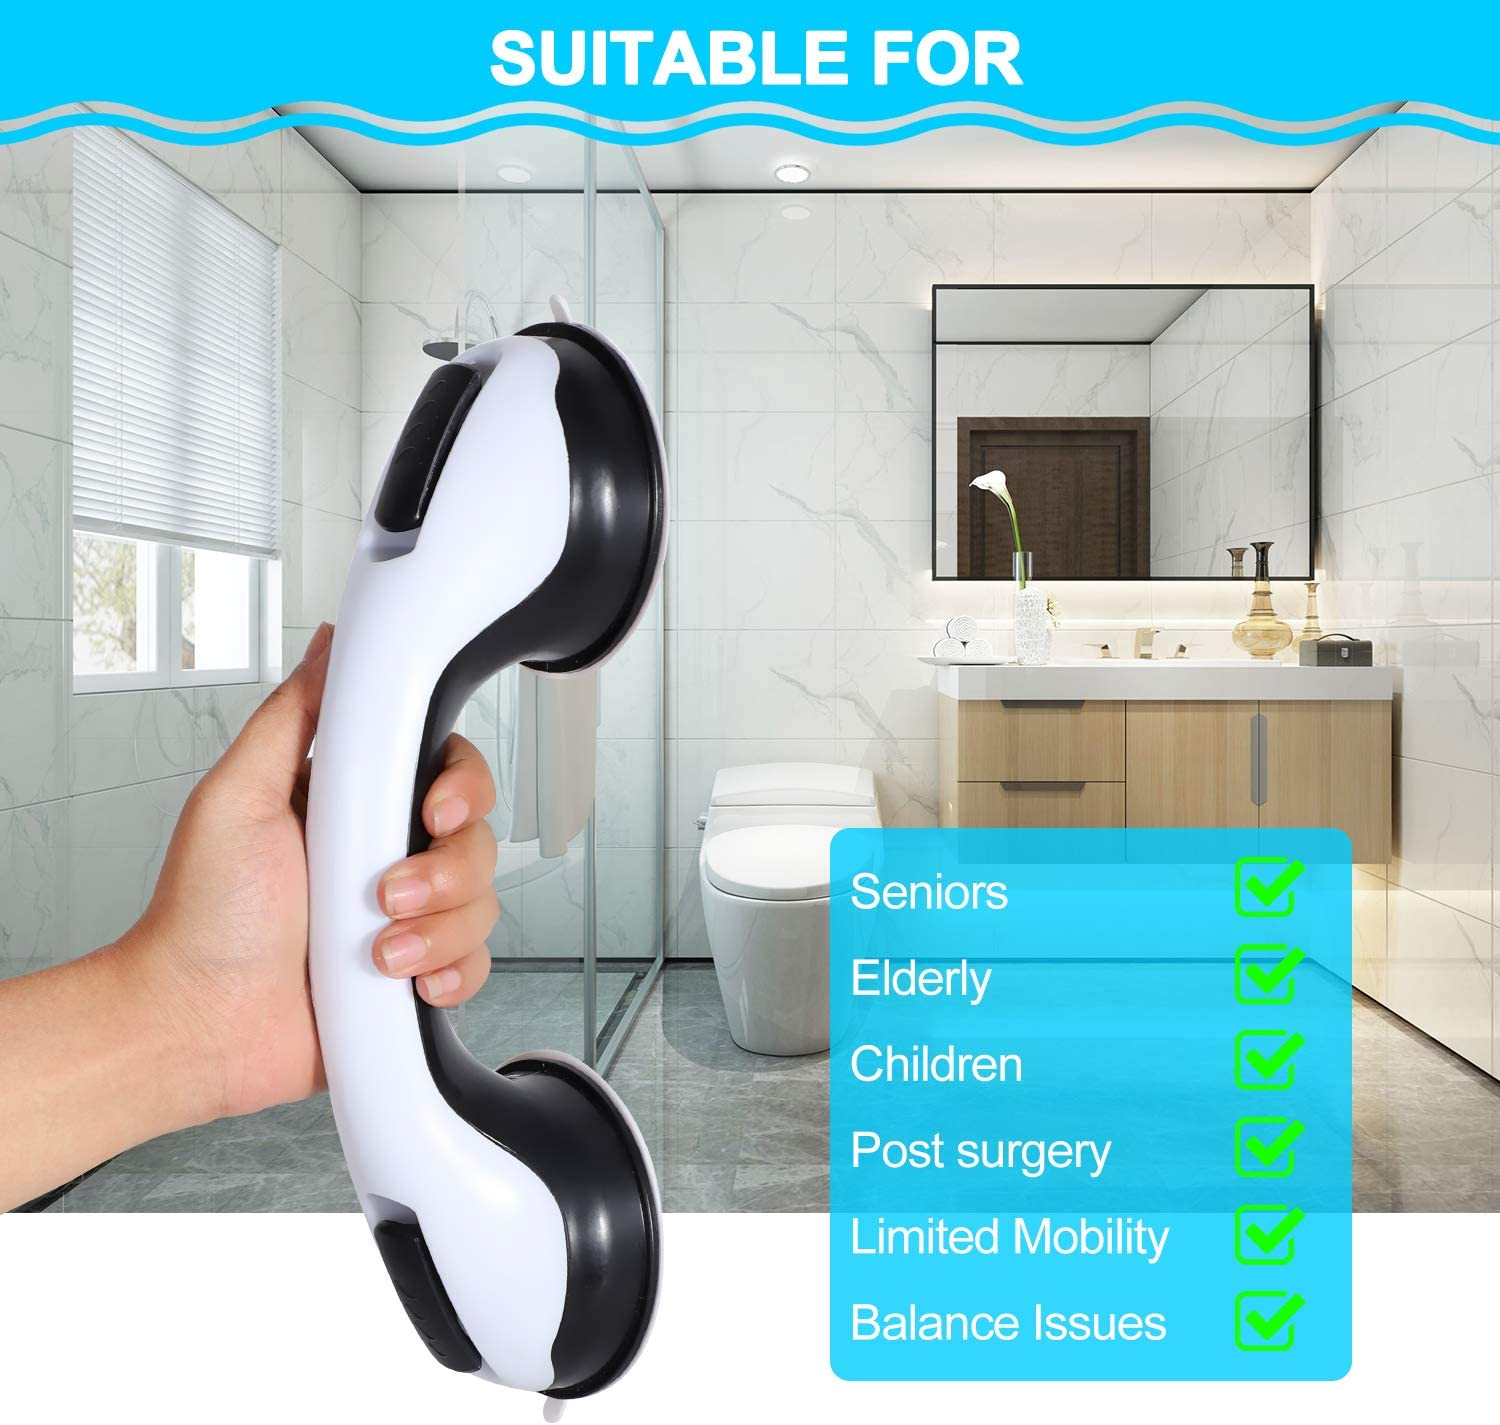 Bath Handle 2 Pack 12 inch Shower Handle with Strong Hold Suction Cup Grip Grab in Bathroom Shower Suction Grab Bar Grab Bars for Bathroom Safety Grab Bar